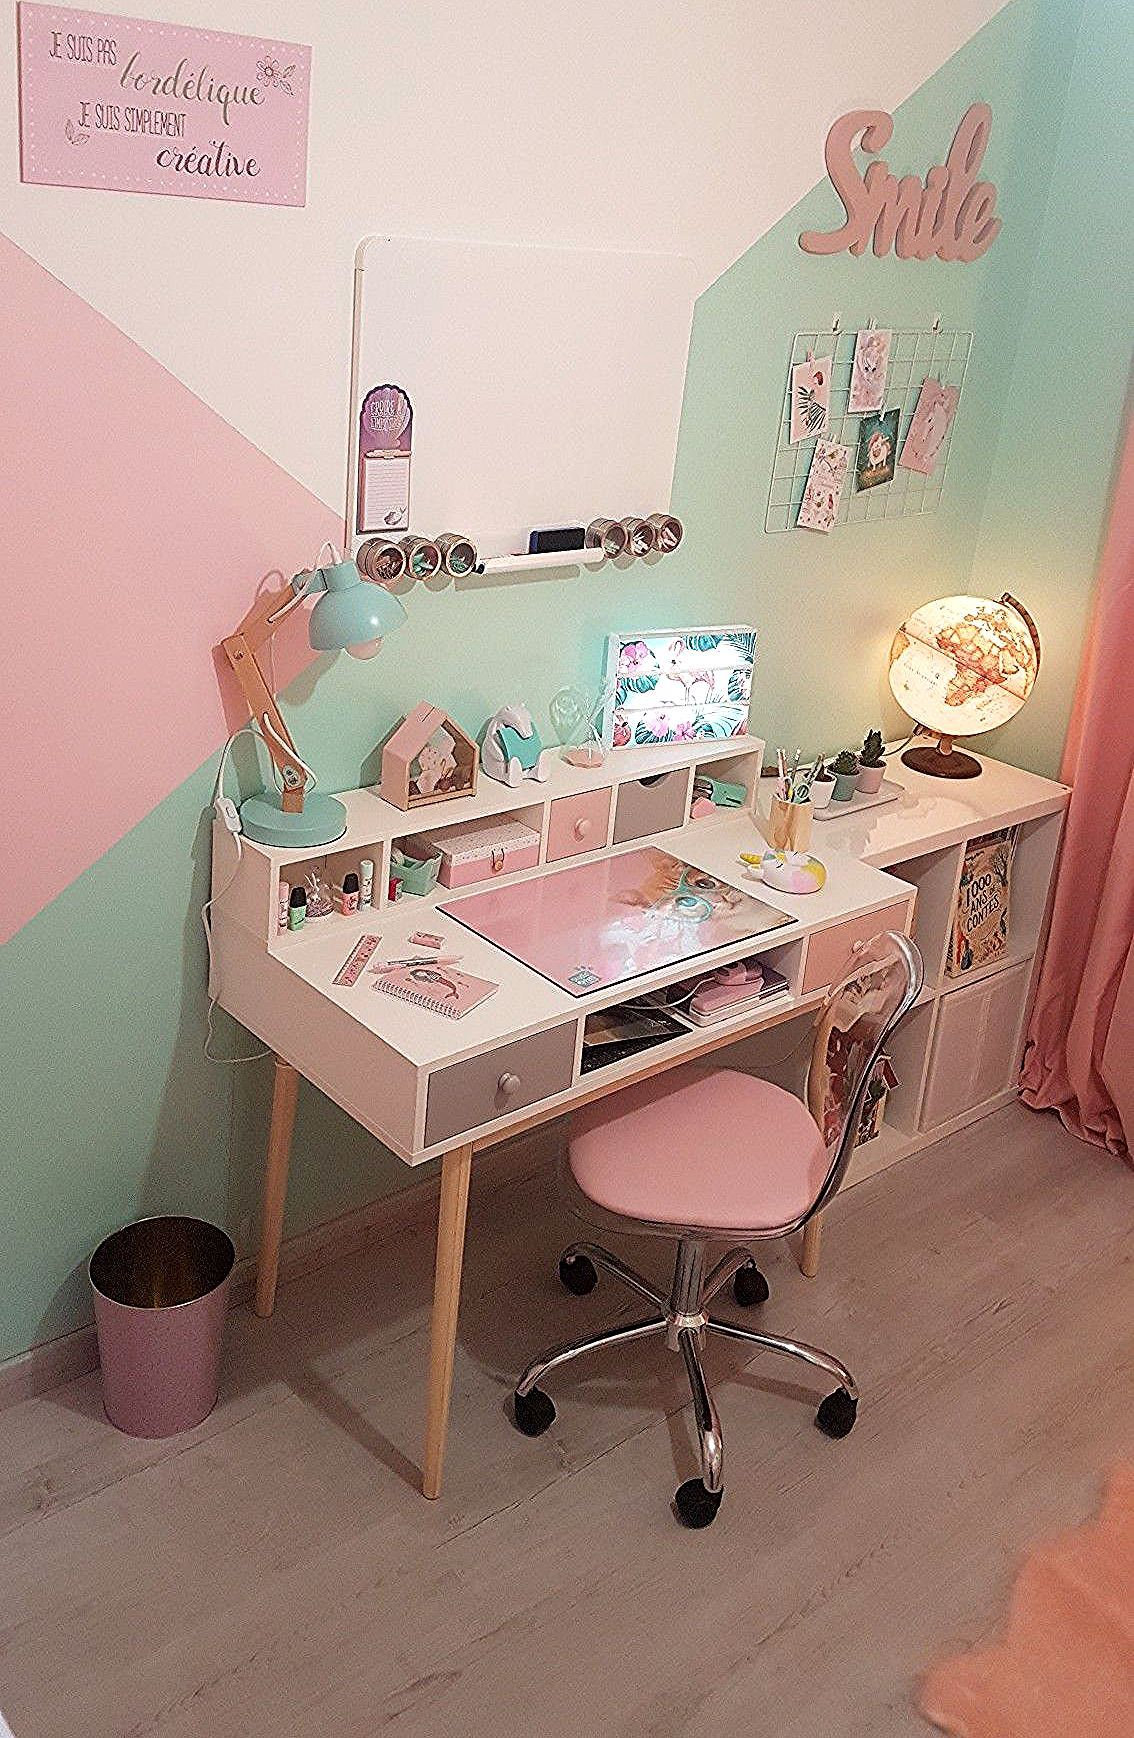 Chambre De Ma Fille Bureau Et Smile Maison Du Monde Chaise Conforama Lampe Plaque Murale Poubelle Crayons De Papier But Globe N Girls Room Design Kids Room Design Girl Room